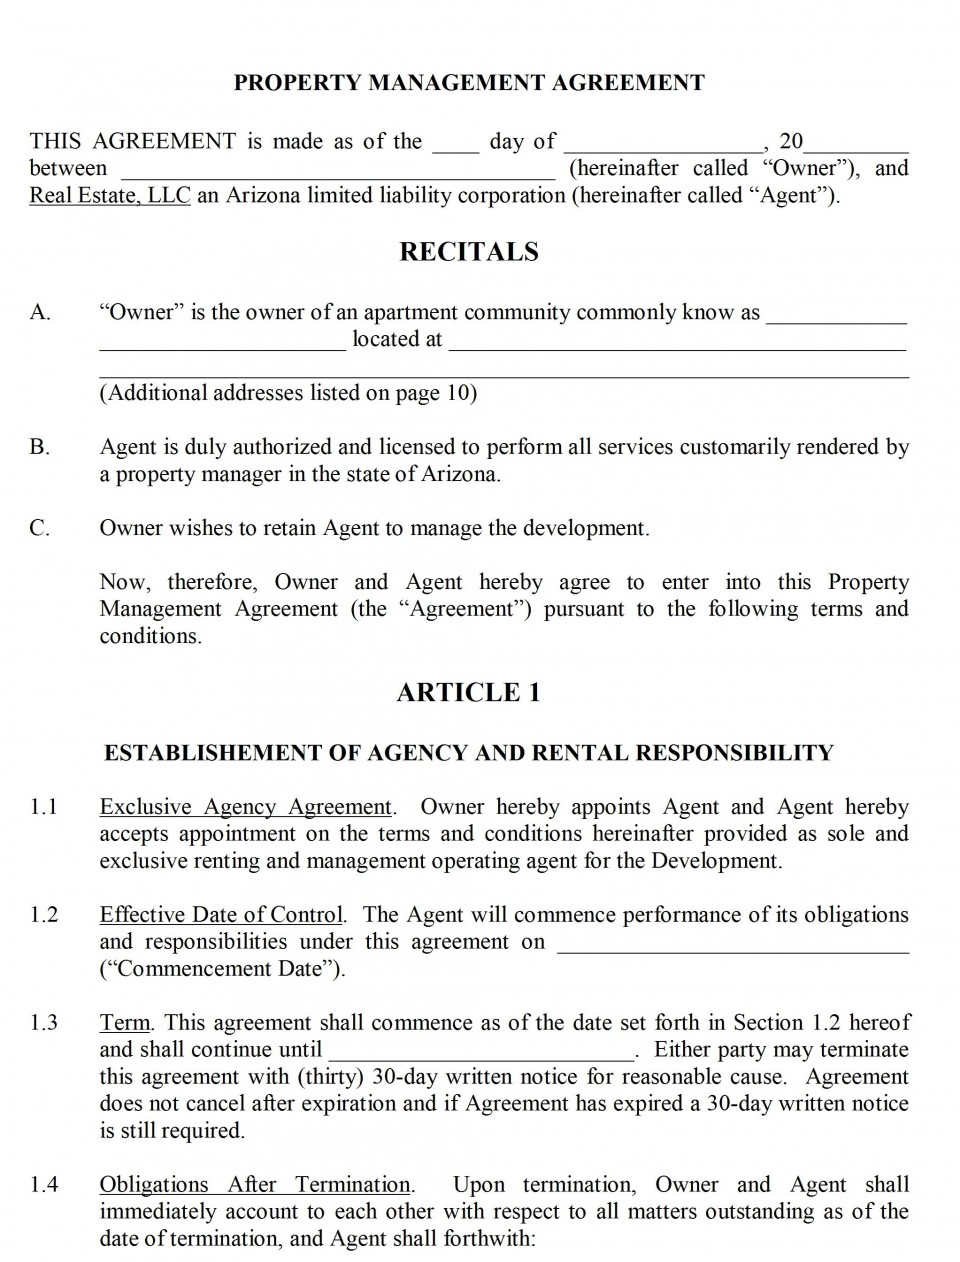 004 Shocking Property Management Contract Form Inspiration  Agreement Template Ontario960